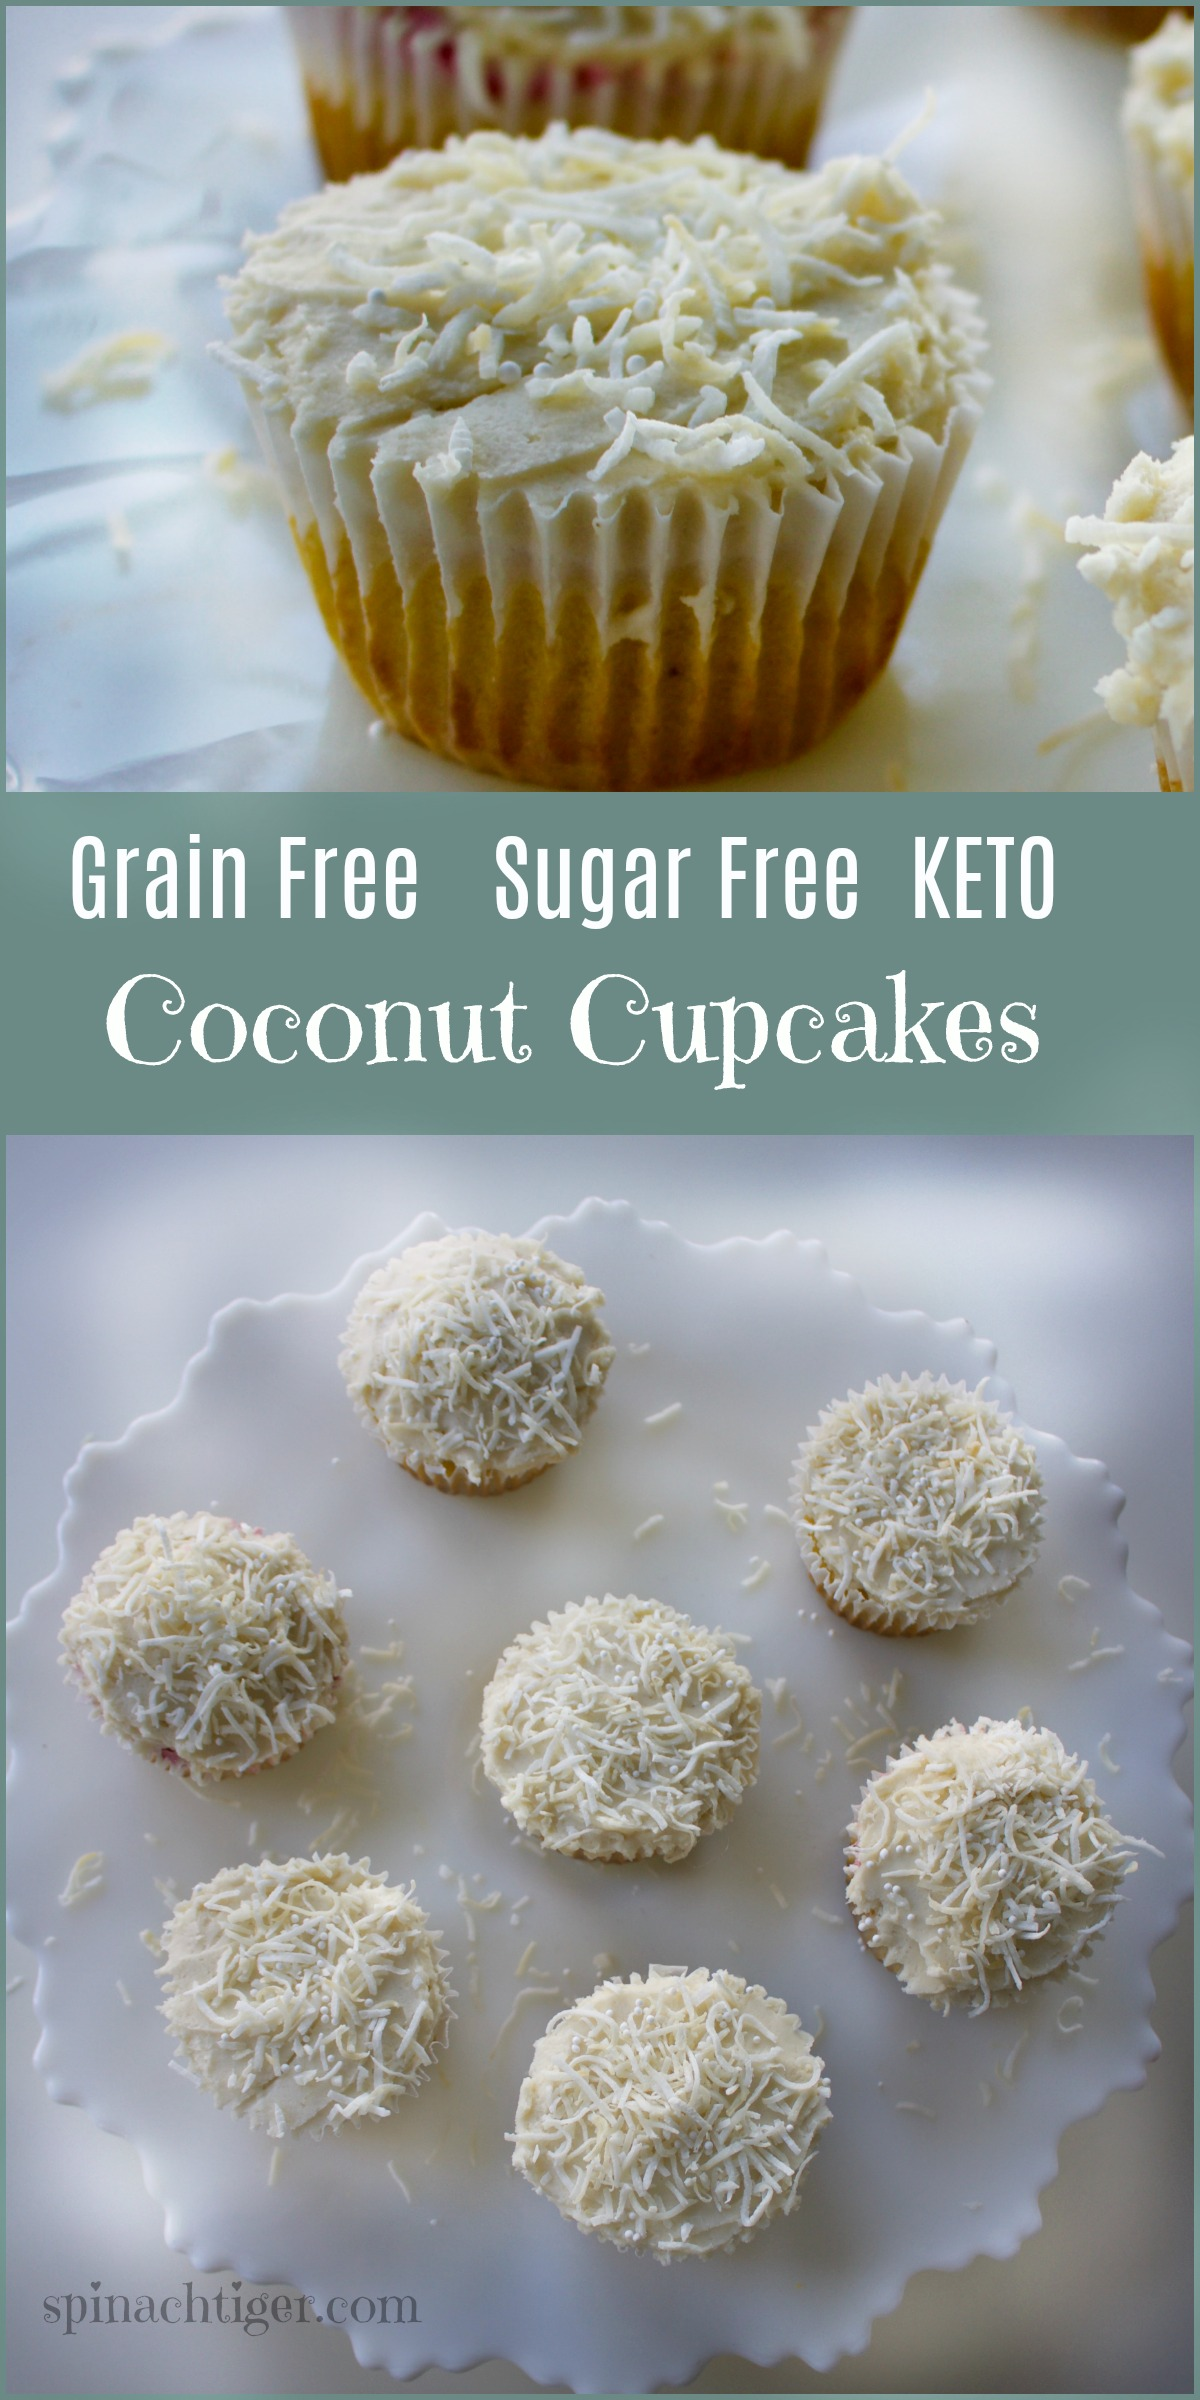 How to Make Grain Free Coconut Cupcakes, Keto, Low Carb from Spinach Tiger